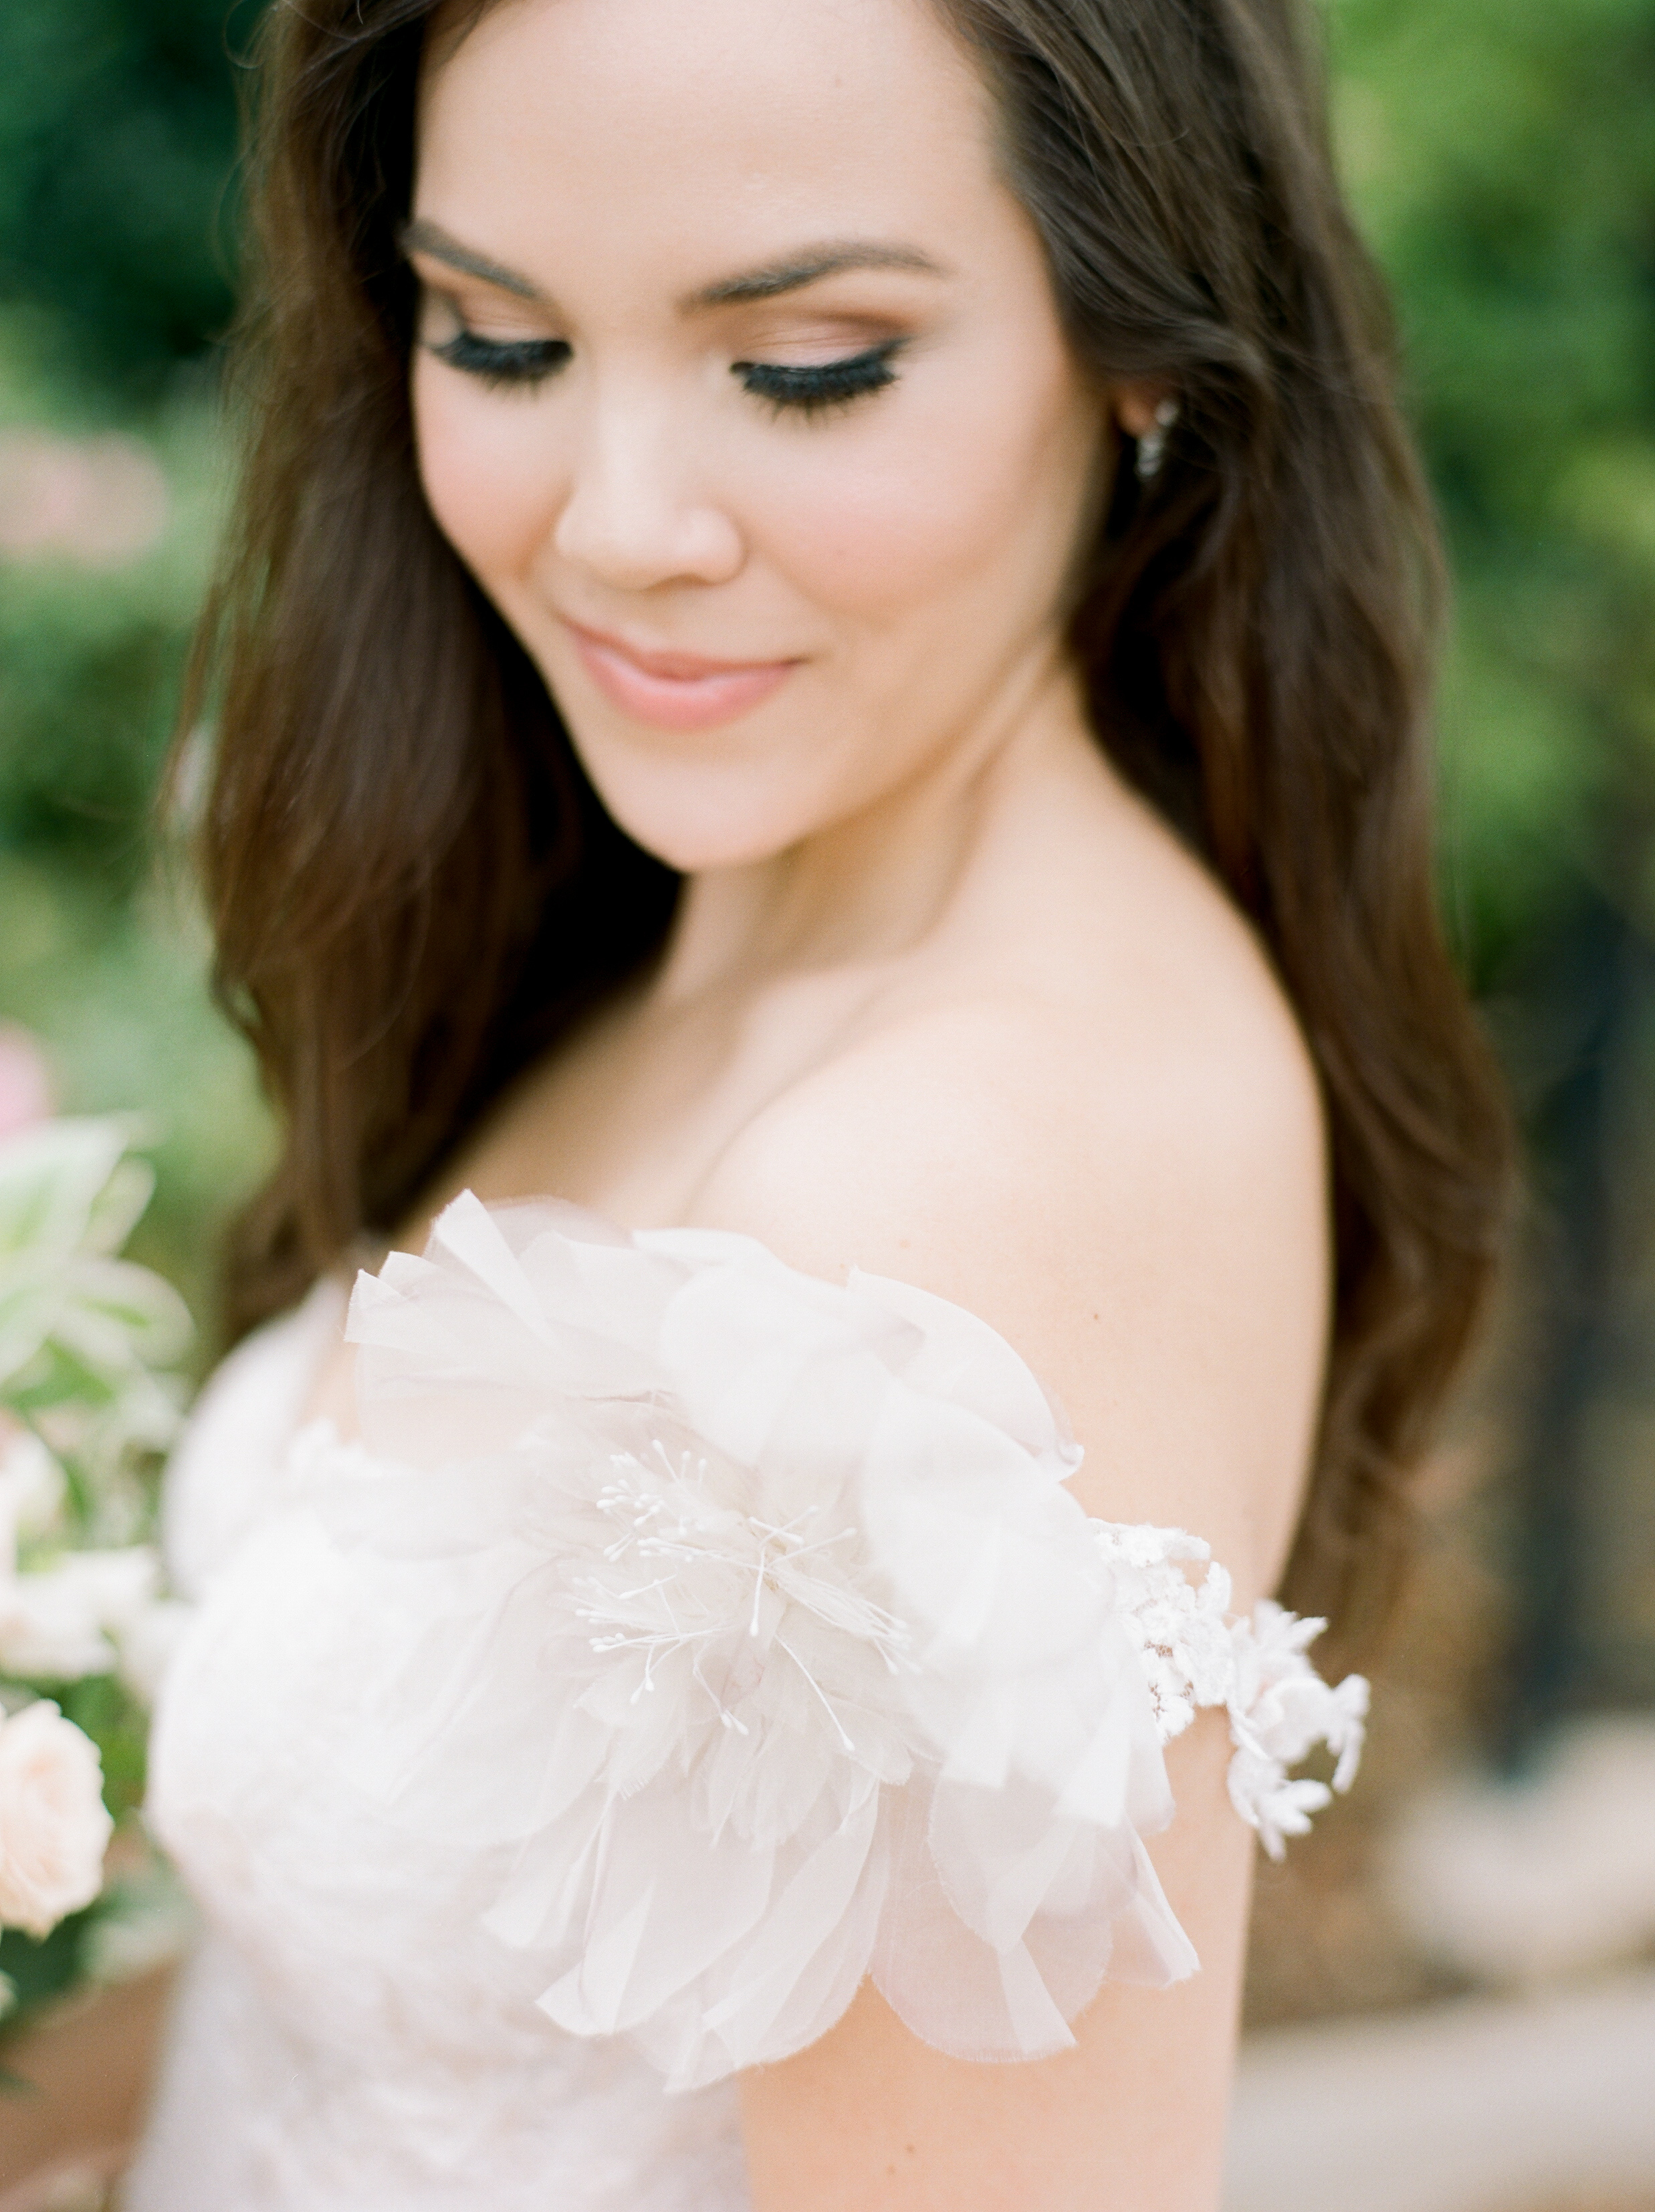 Fine-Art-Film-Houston-Wedding-Photographer-Best-Top-Luxury-Texas-Austin-Dallas-Destination-Dana-Fernandez-Photography-Portrait-Bridals-McGovern-Centennial-Gardens-4.jpg